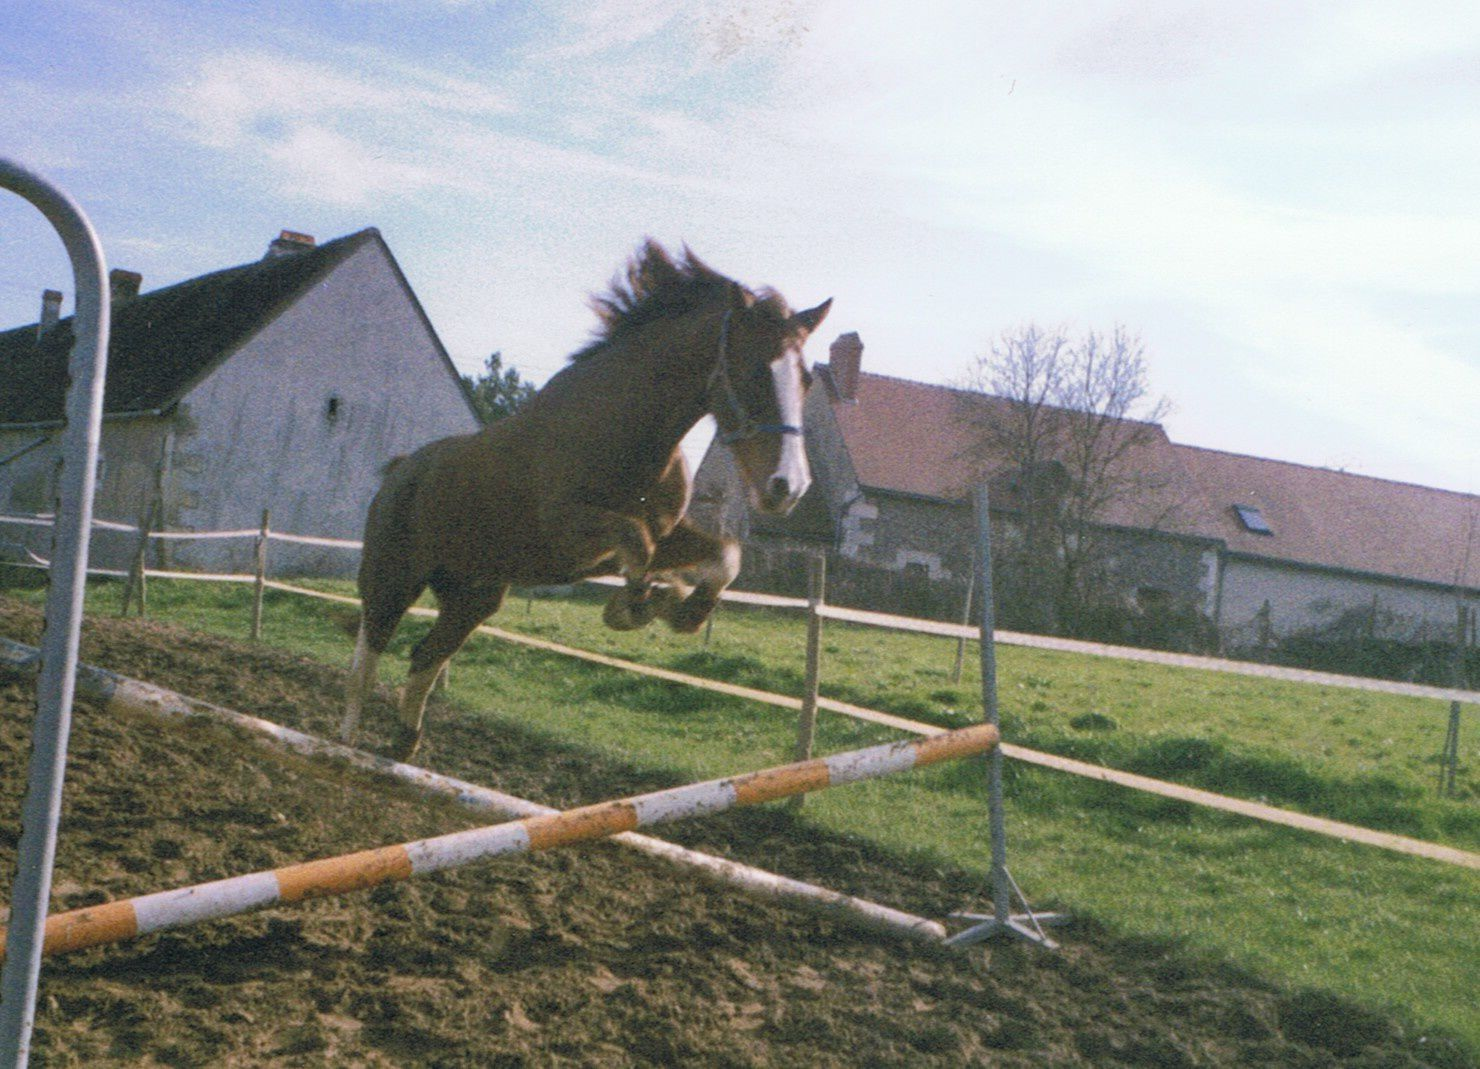 Sauts d 39 obstacles en libert faire sauter son cheval en - Frison saut d obstacle ...